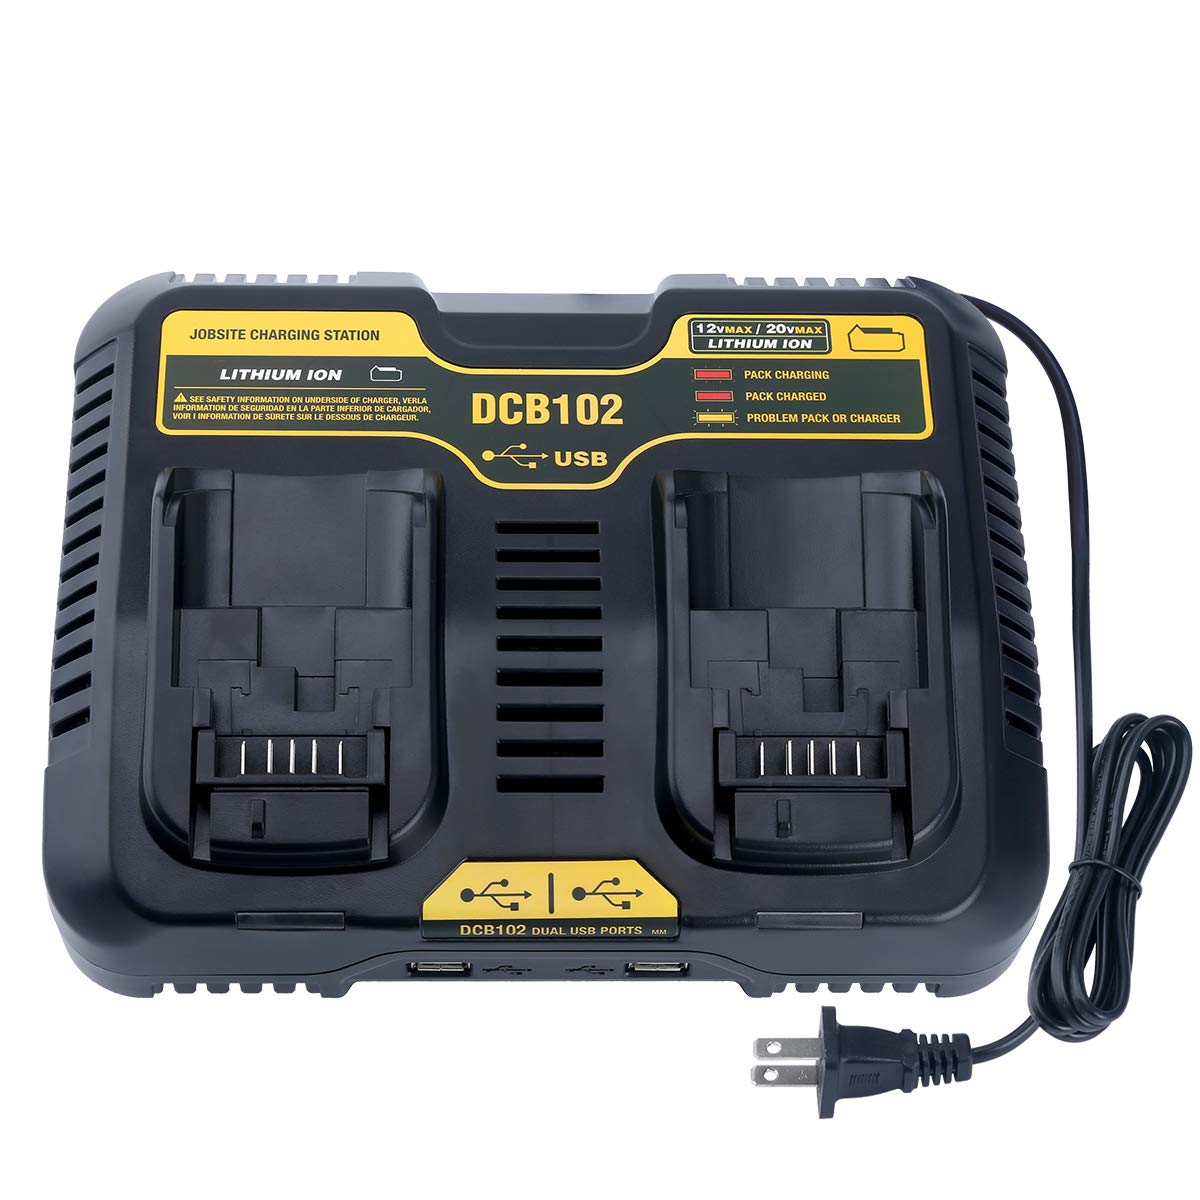 Lasica Replacement DCB102BP Charger for DEWALT 12-Volt MAX/20-Volt MAX Jobsite Charging Station DCB102 DCB102BP DCB104 DCB118 DCB115 DCB107 Dewalt ...